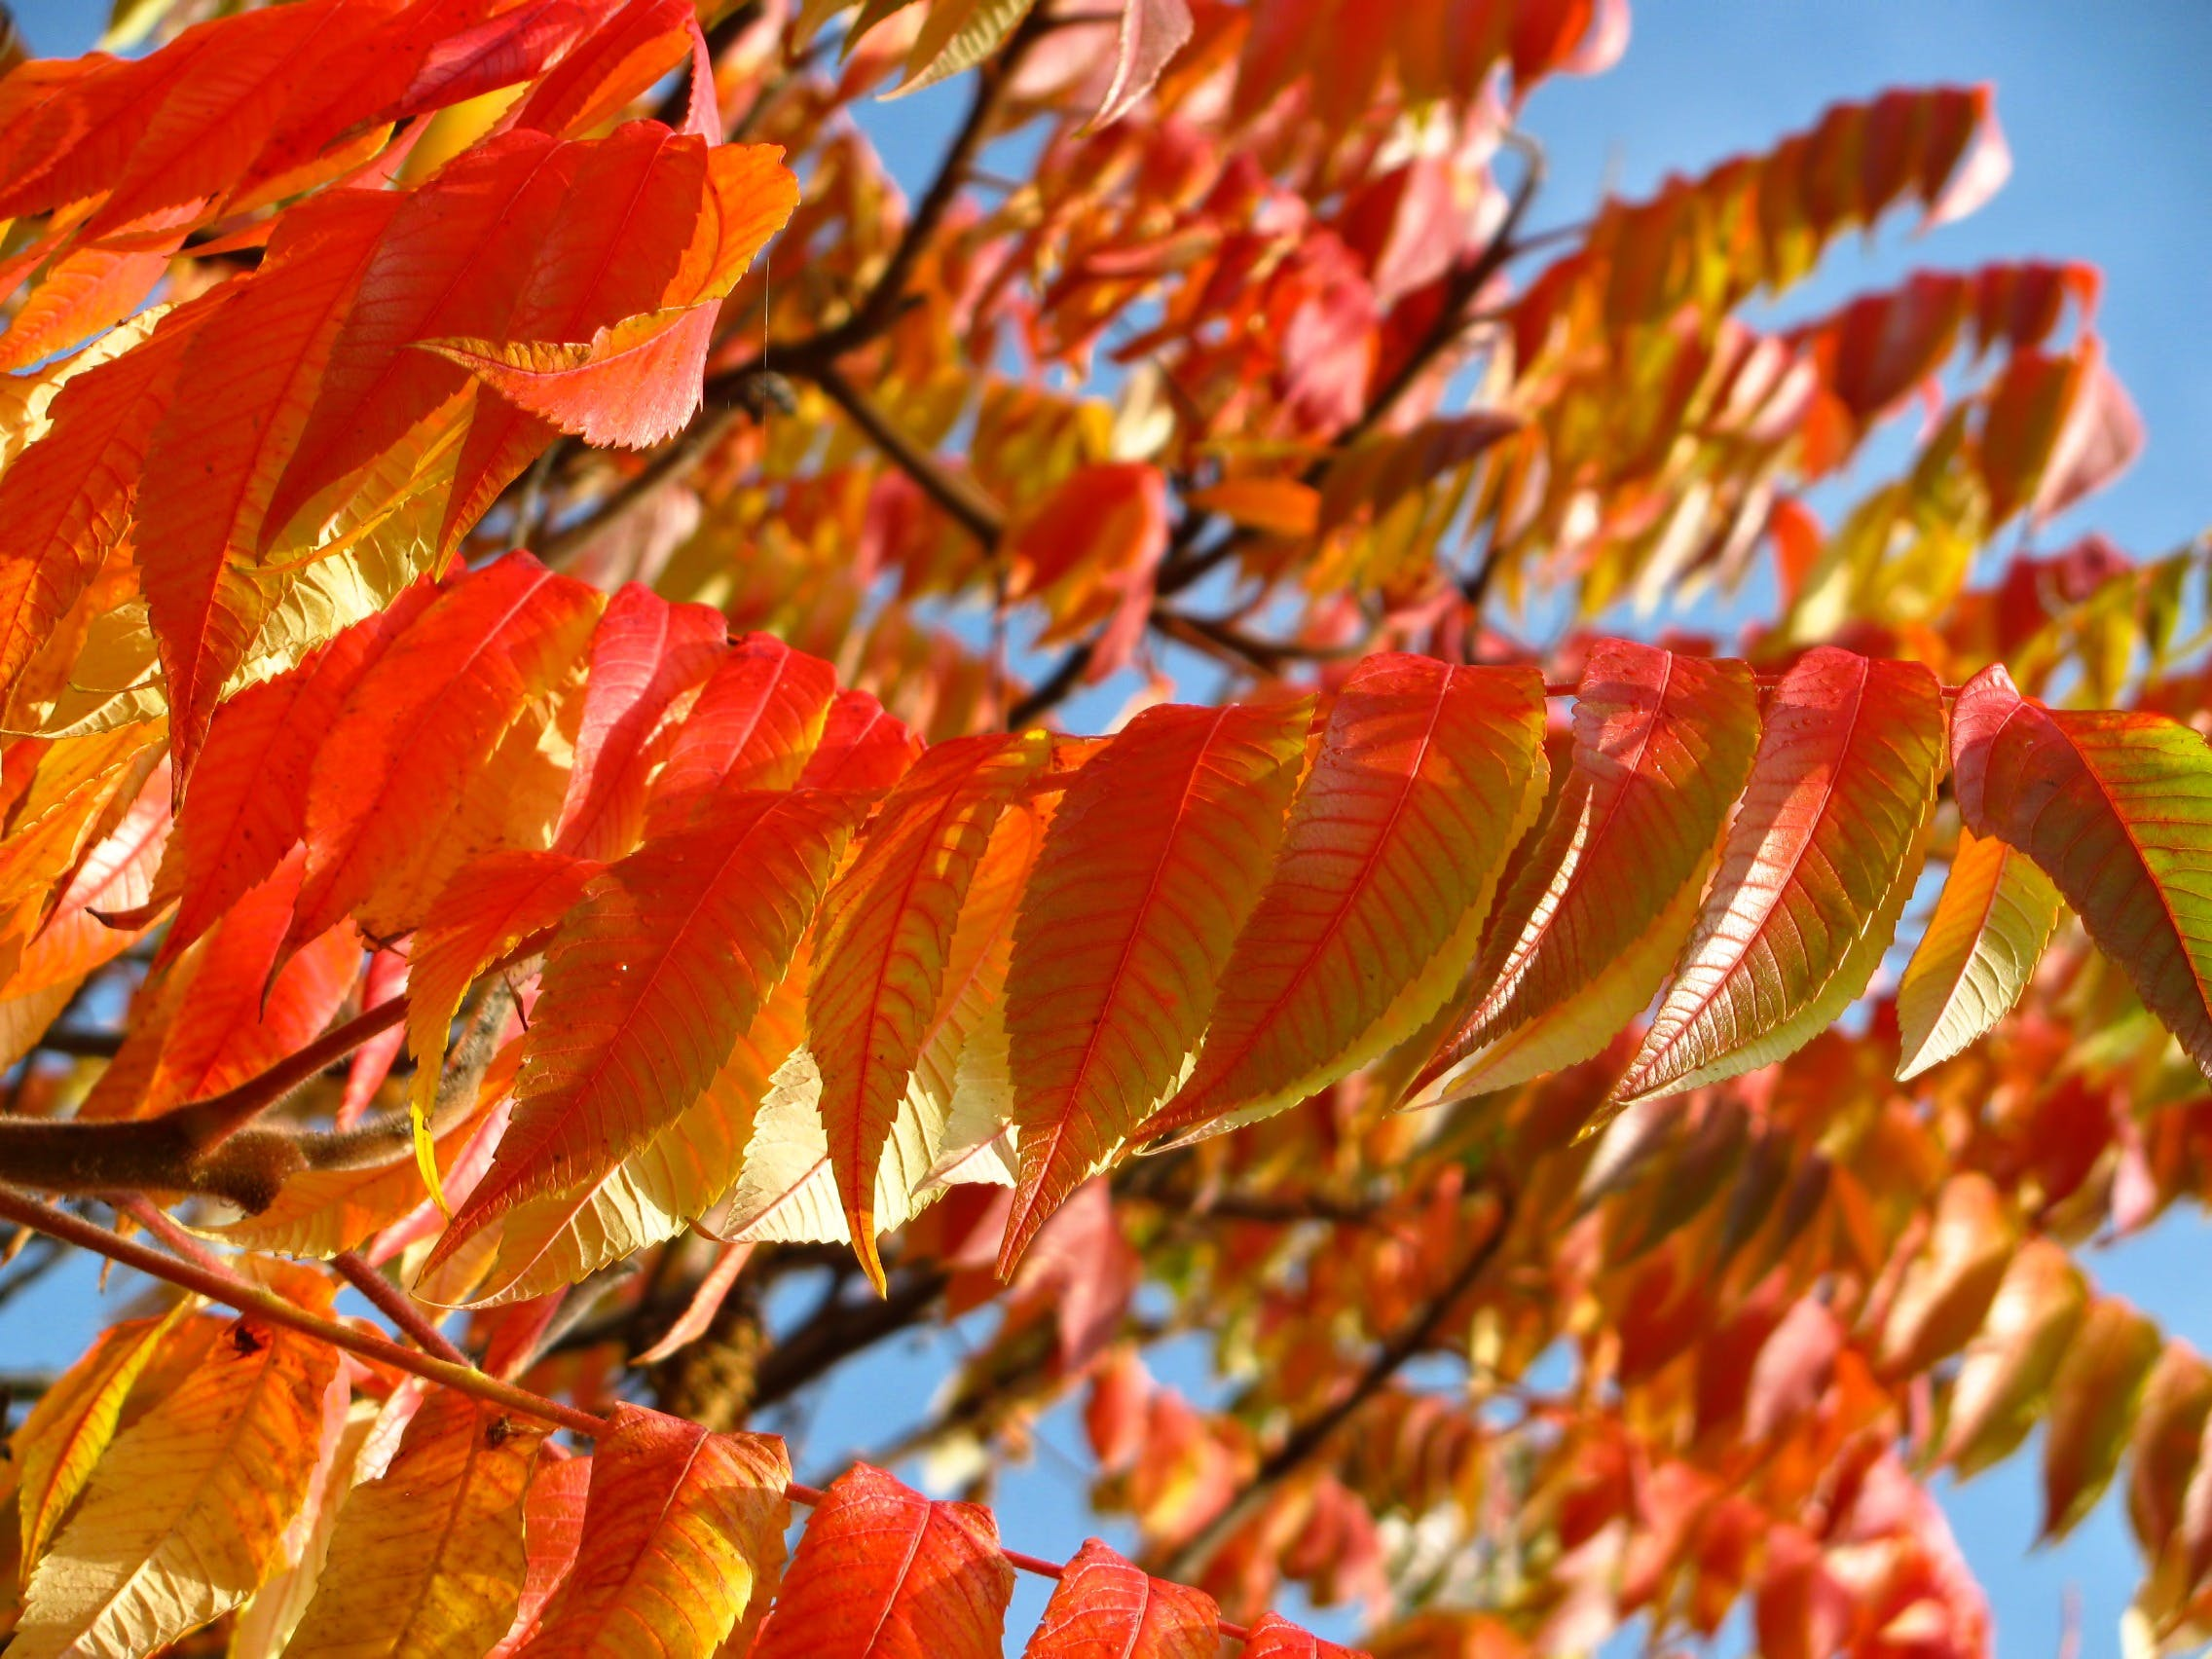 Orange and Yellow Leaves on a Tree